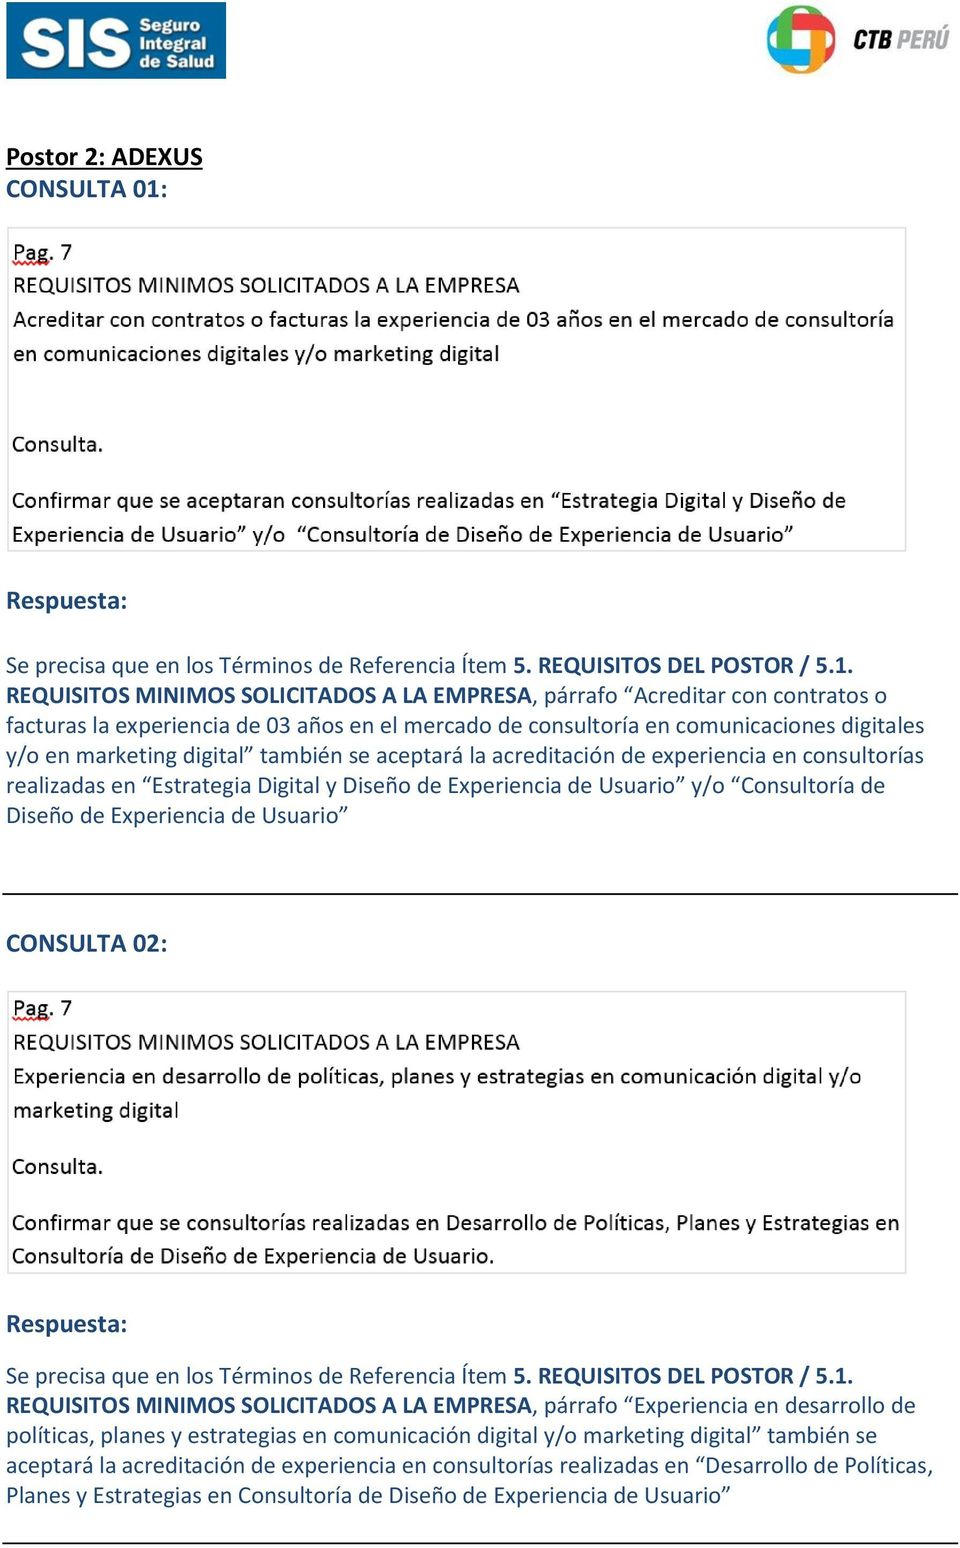 REQUISITOS MINIMOS SOLICITADOS A LA EMPRESA, párrafo Acreditar con contratos o facturas la experiencia de 03 años en el mercado de consultoría en comunicaciones digitales y/o en marketing digital